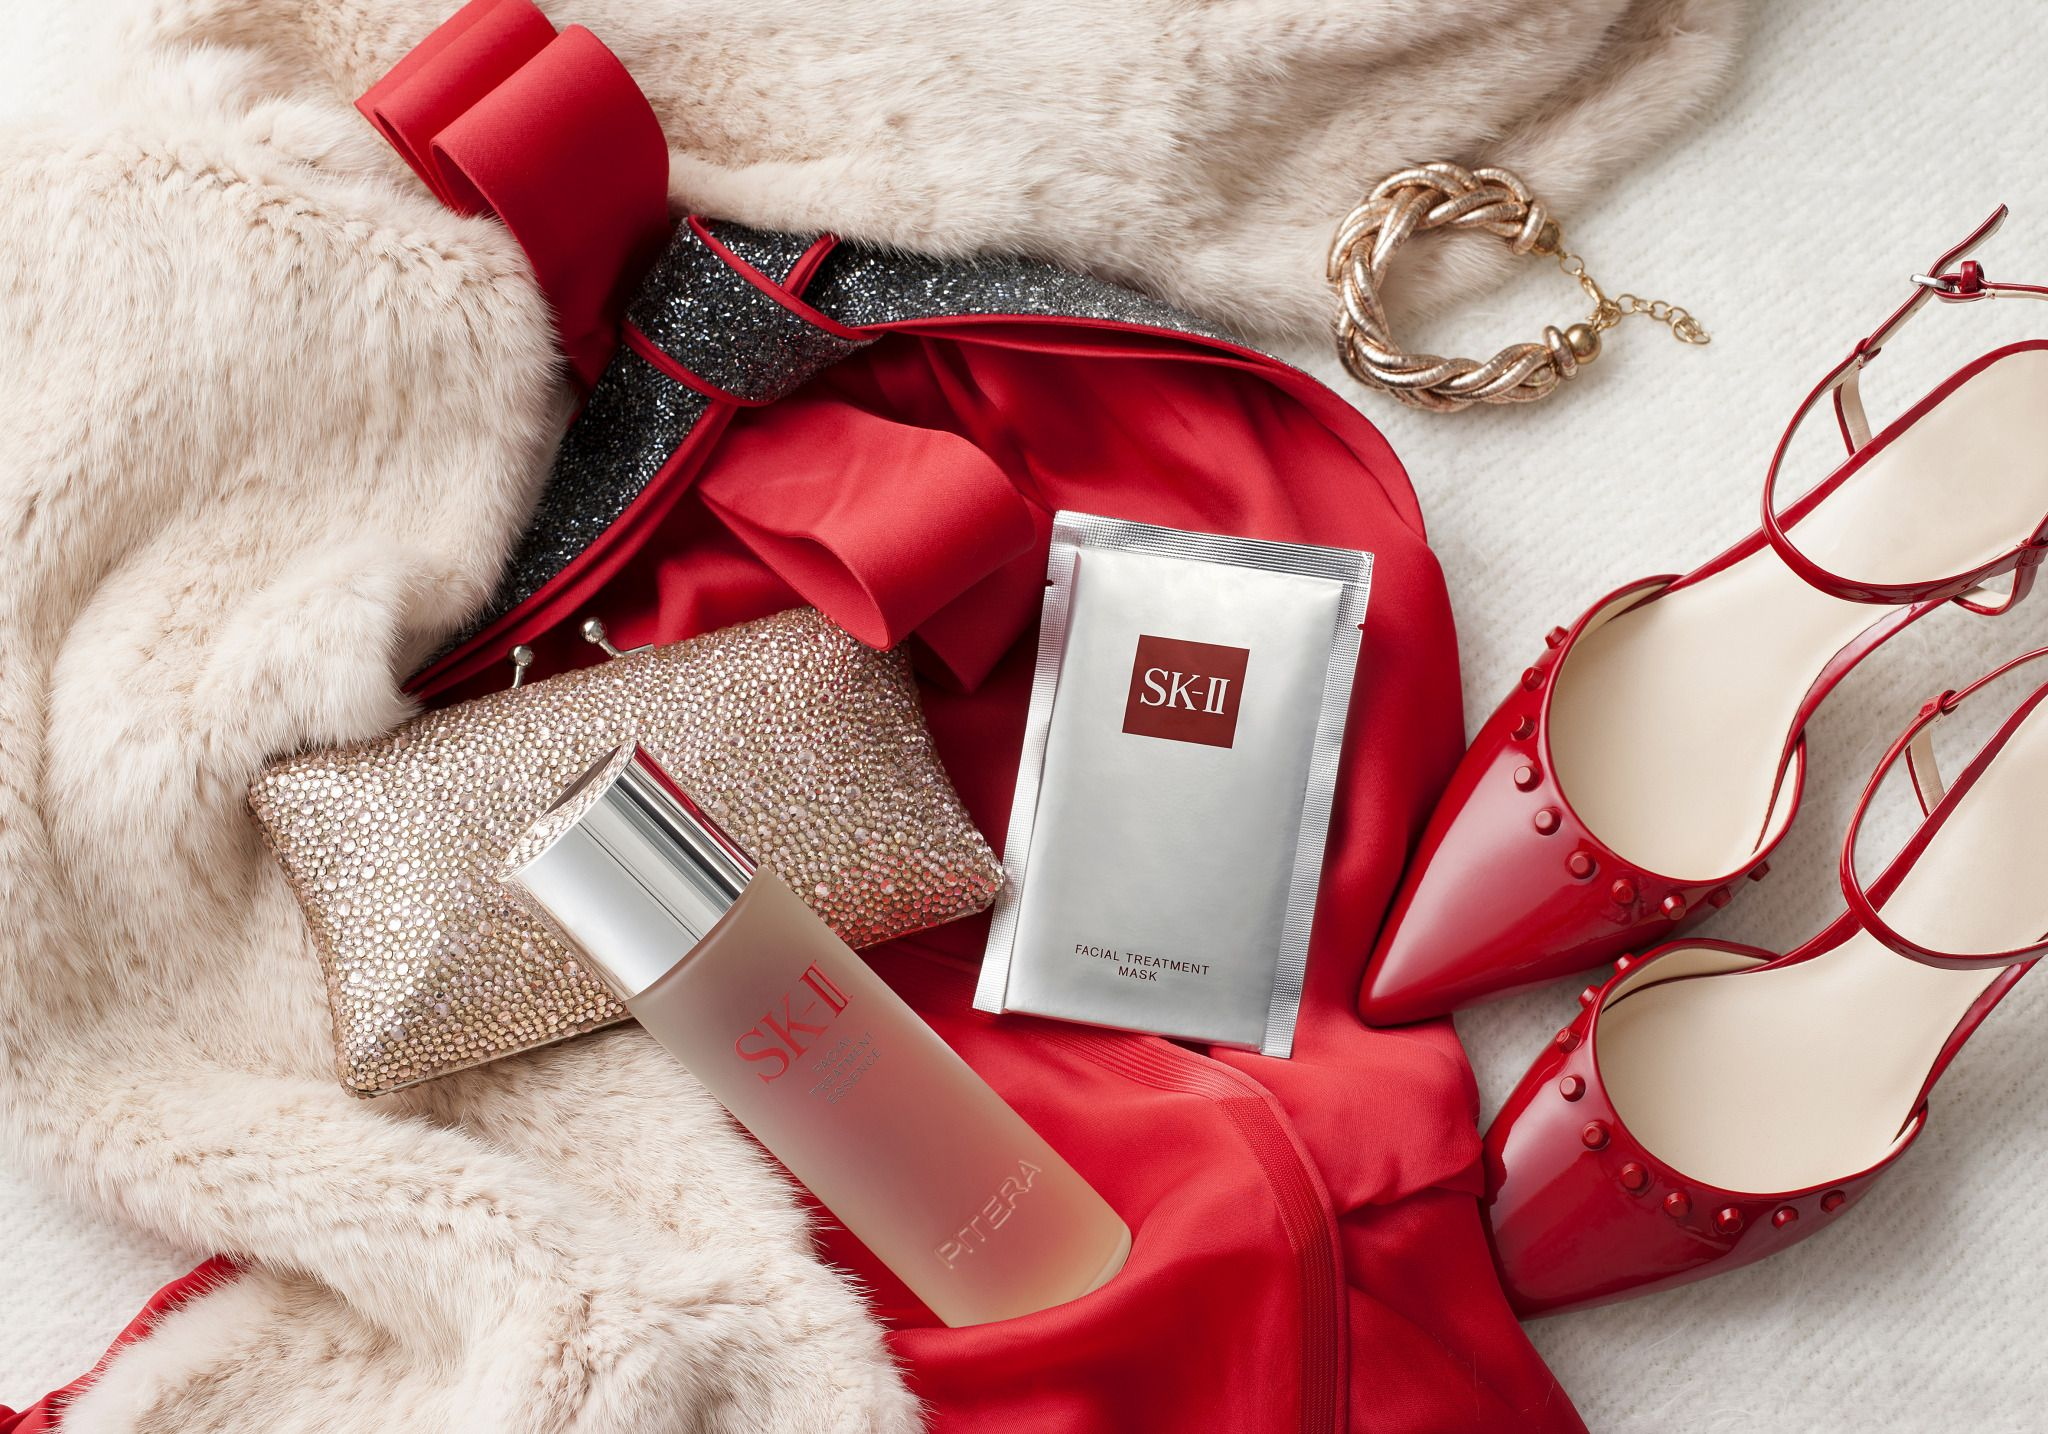 Image result for skii facial treatment mask moisturizing new mask sheet